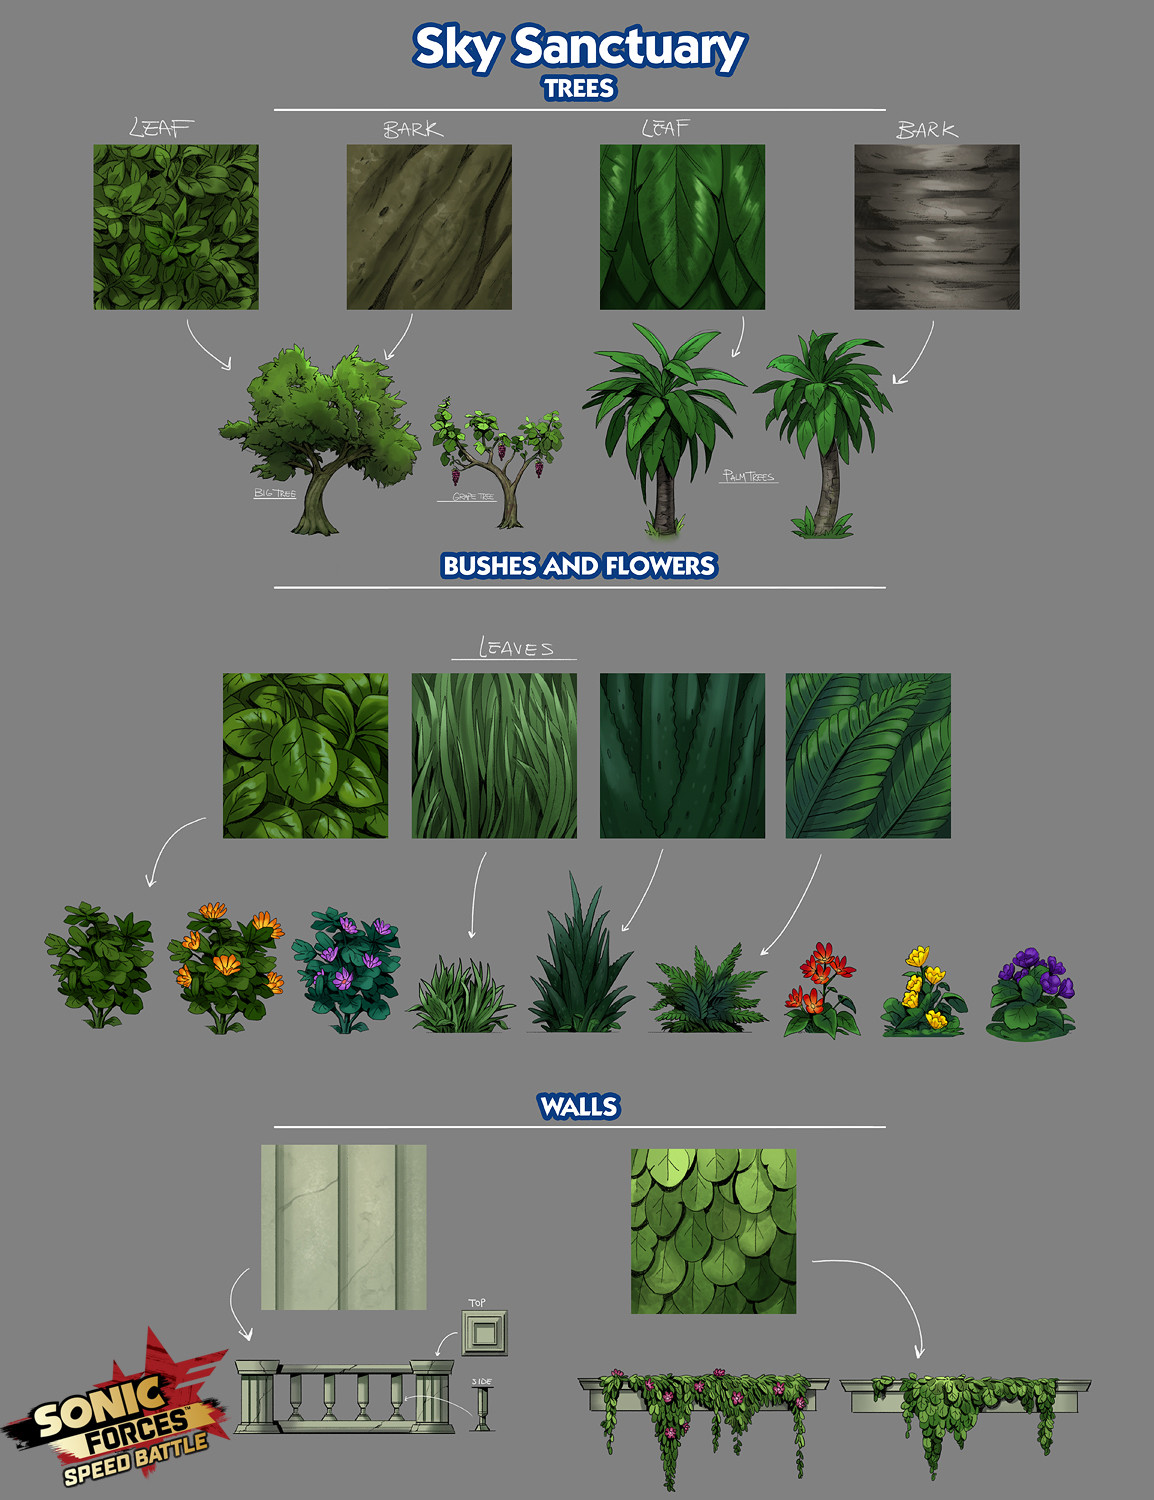 Sky Sanctuary Foliage and Texture Concepts for Sonic Forces: Speed Battle, Copyright SEGA 2017